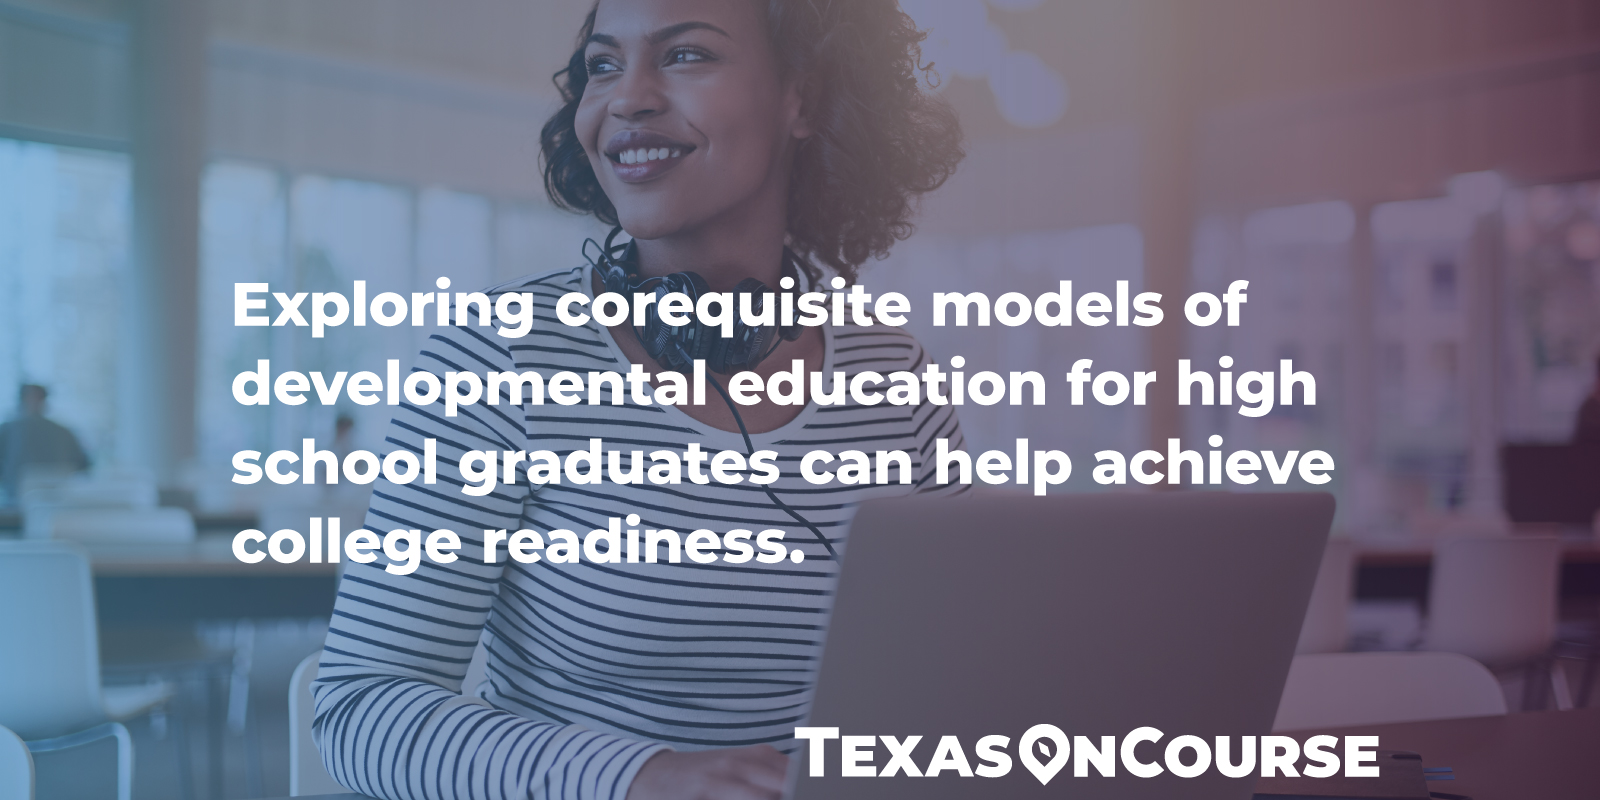 Exploring corequisite models of developmental education for high school graduates can help achieve college readiness.